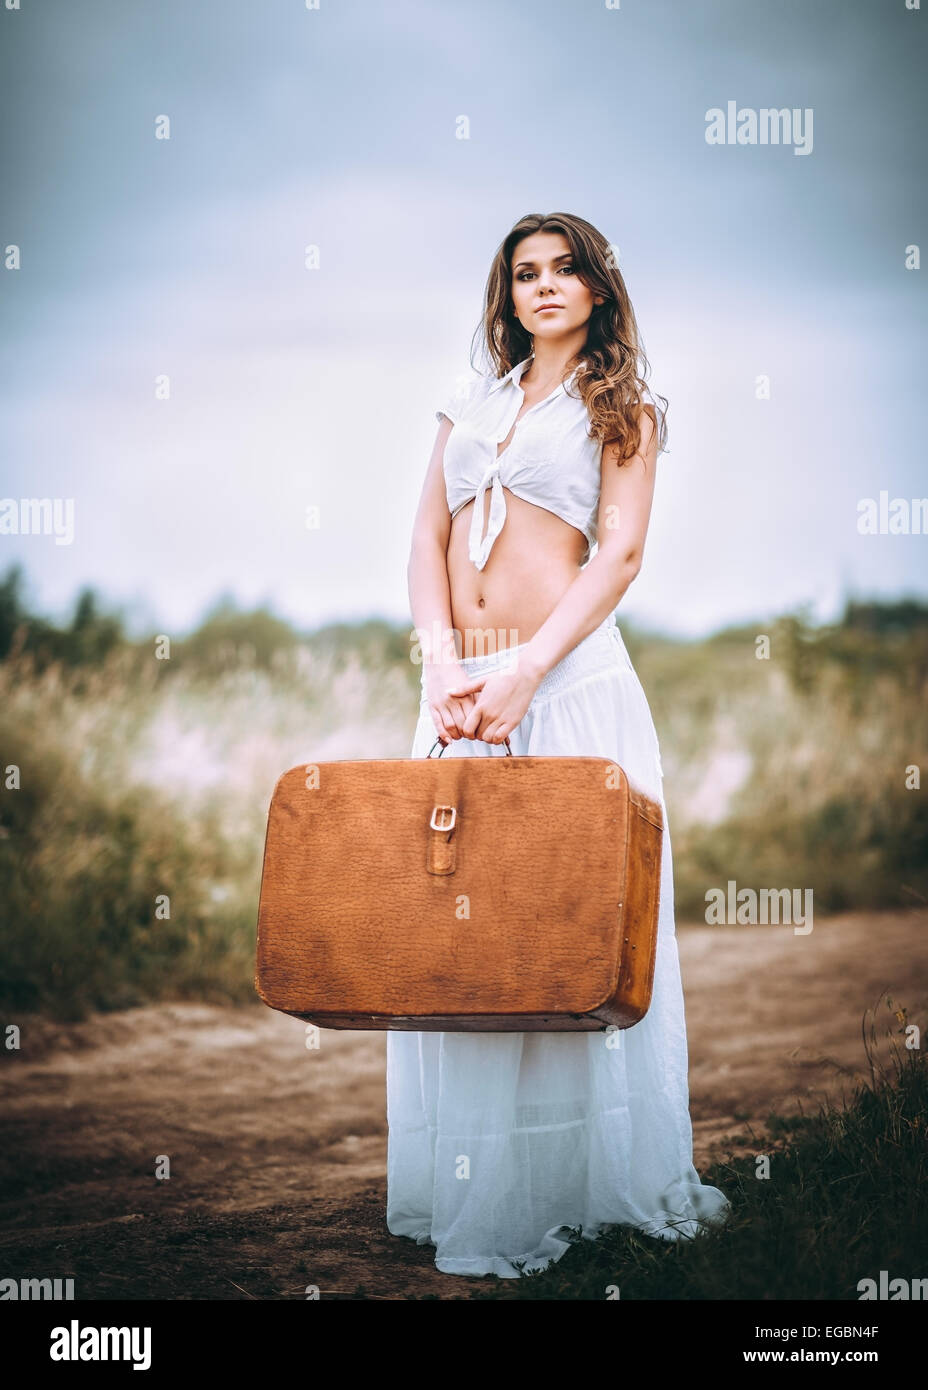 Beautiful young woman with suitcase in hands stands on a field road - Stock Image